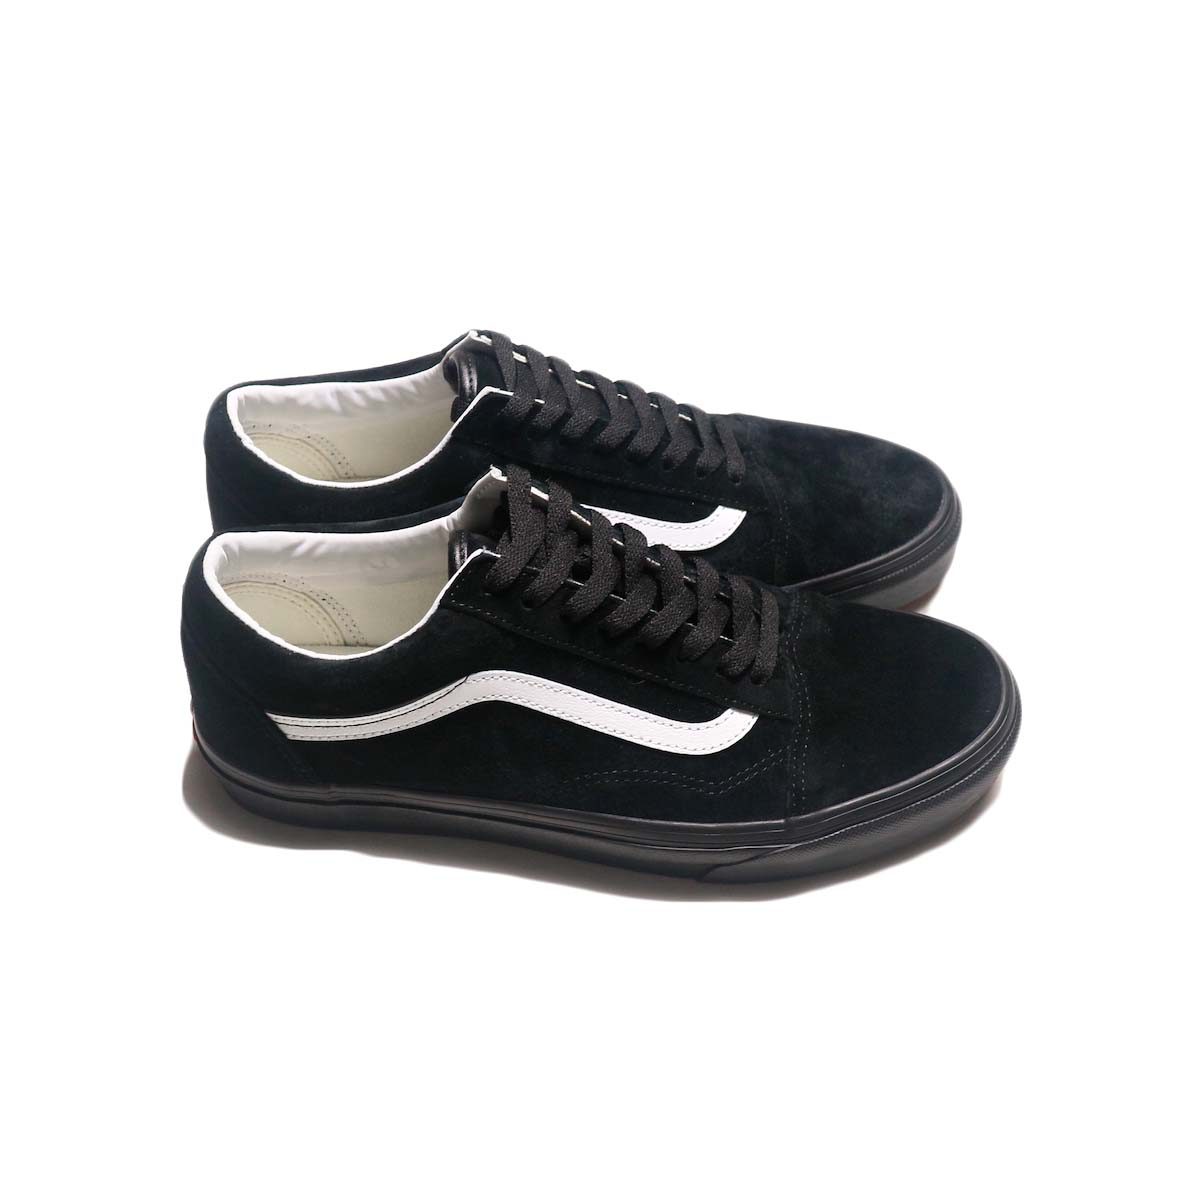 VANS / OLD SKOOL (Piq Suede) (Black) 側面